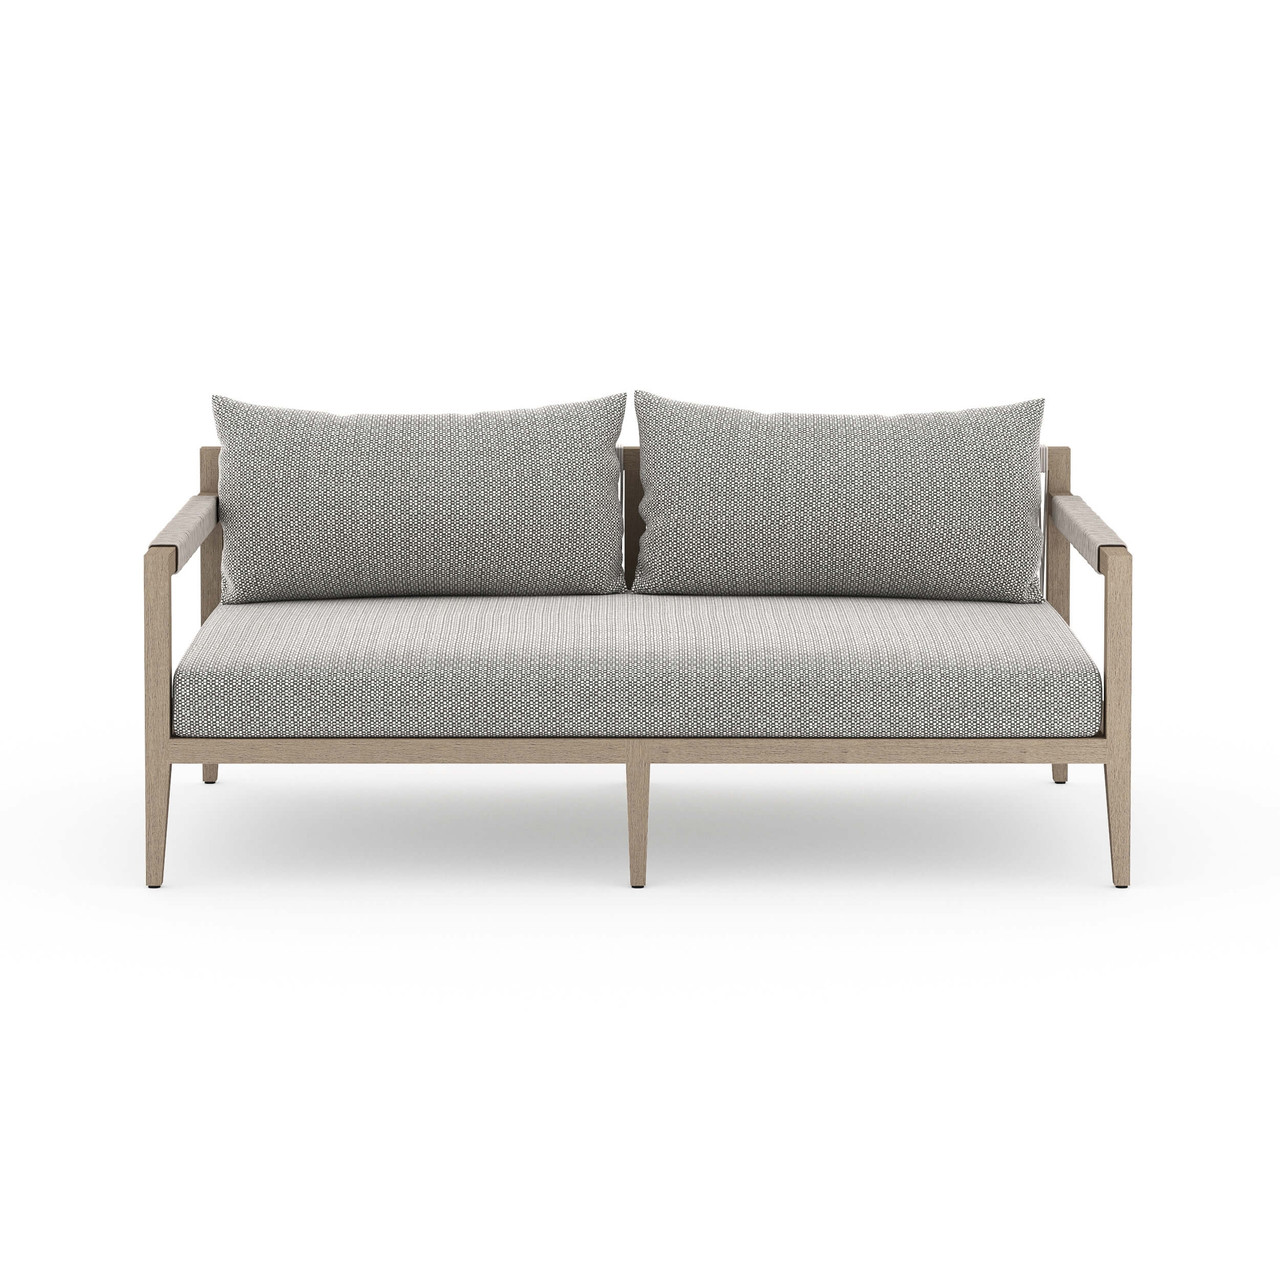 Silhouette Outdoor Sofa, Washed Brown